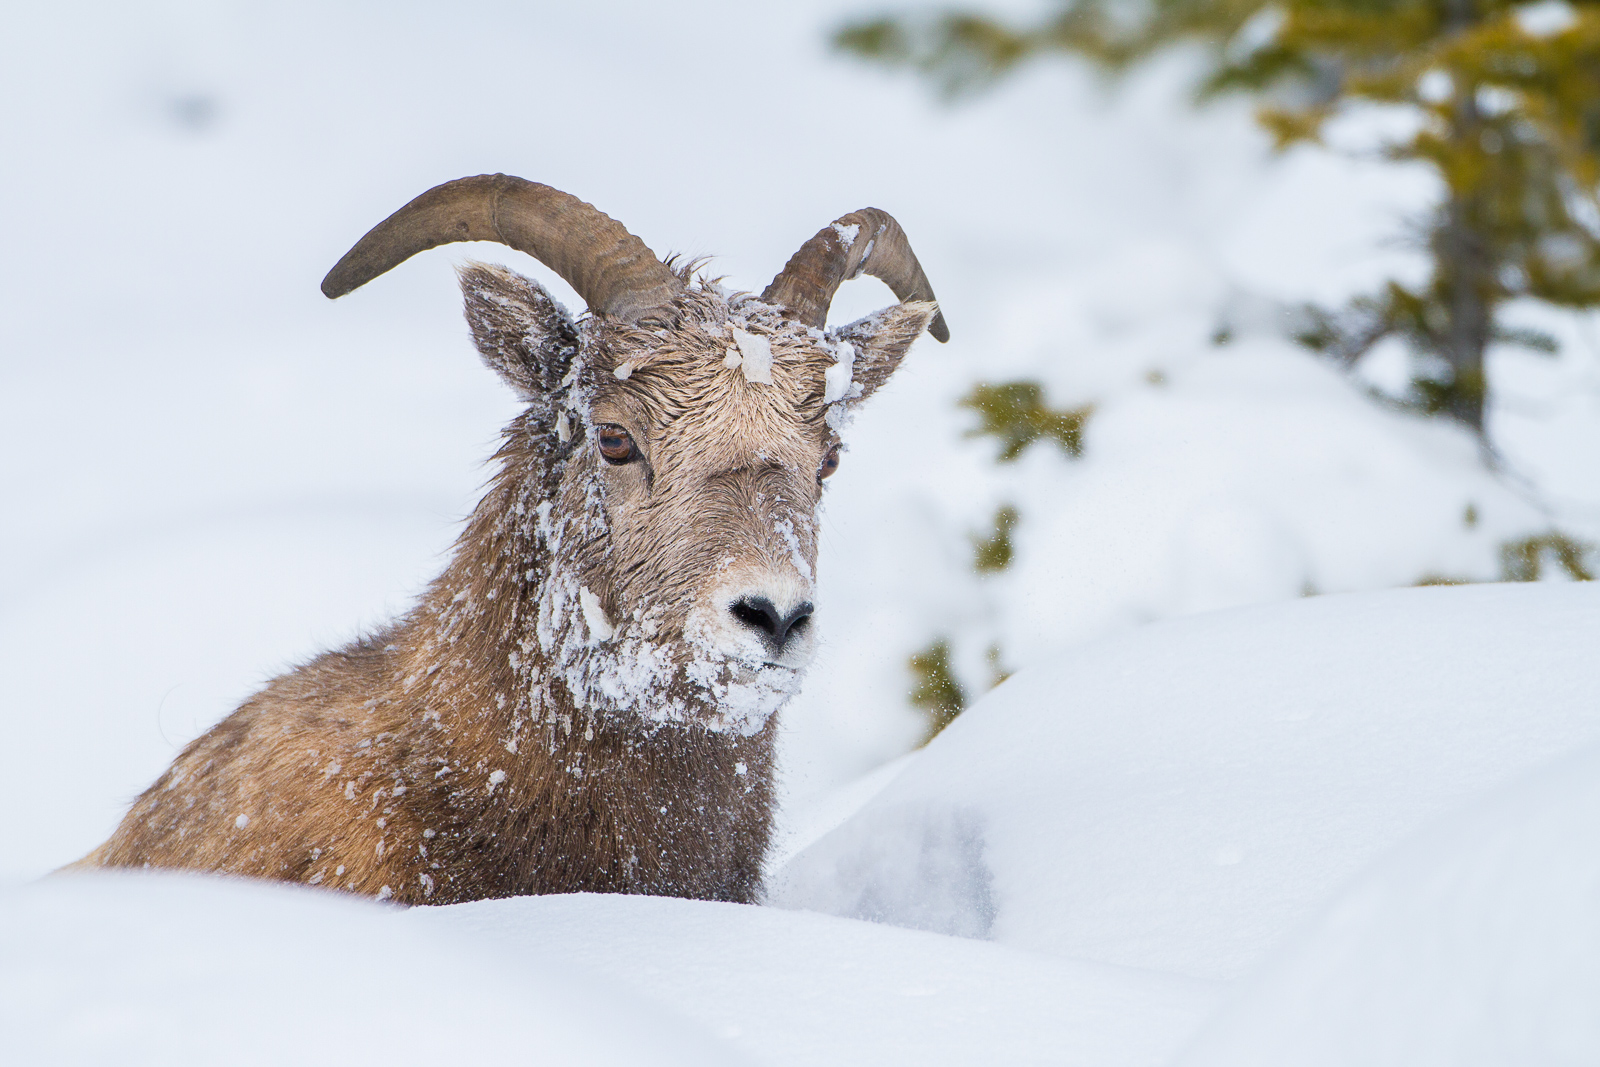 Snowface,Canada,Horizontal,Ovis canadensis,bighorn sheep,wildlife,winter, photo